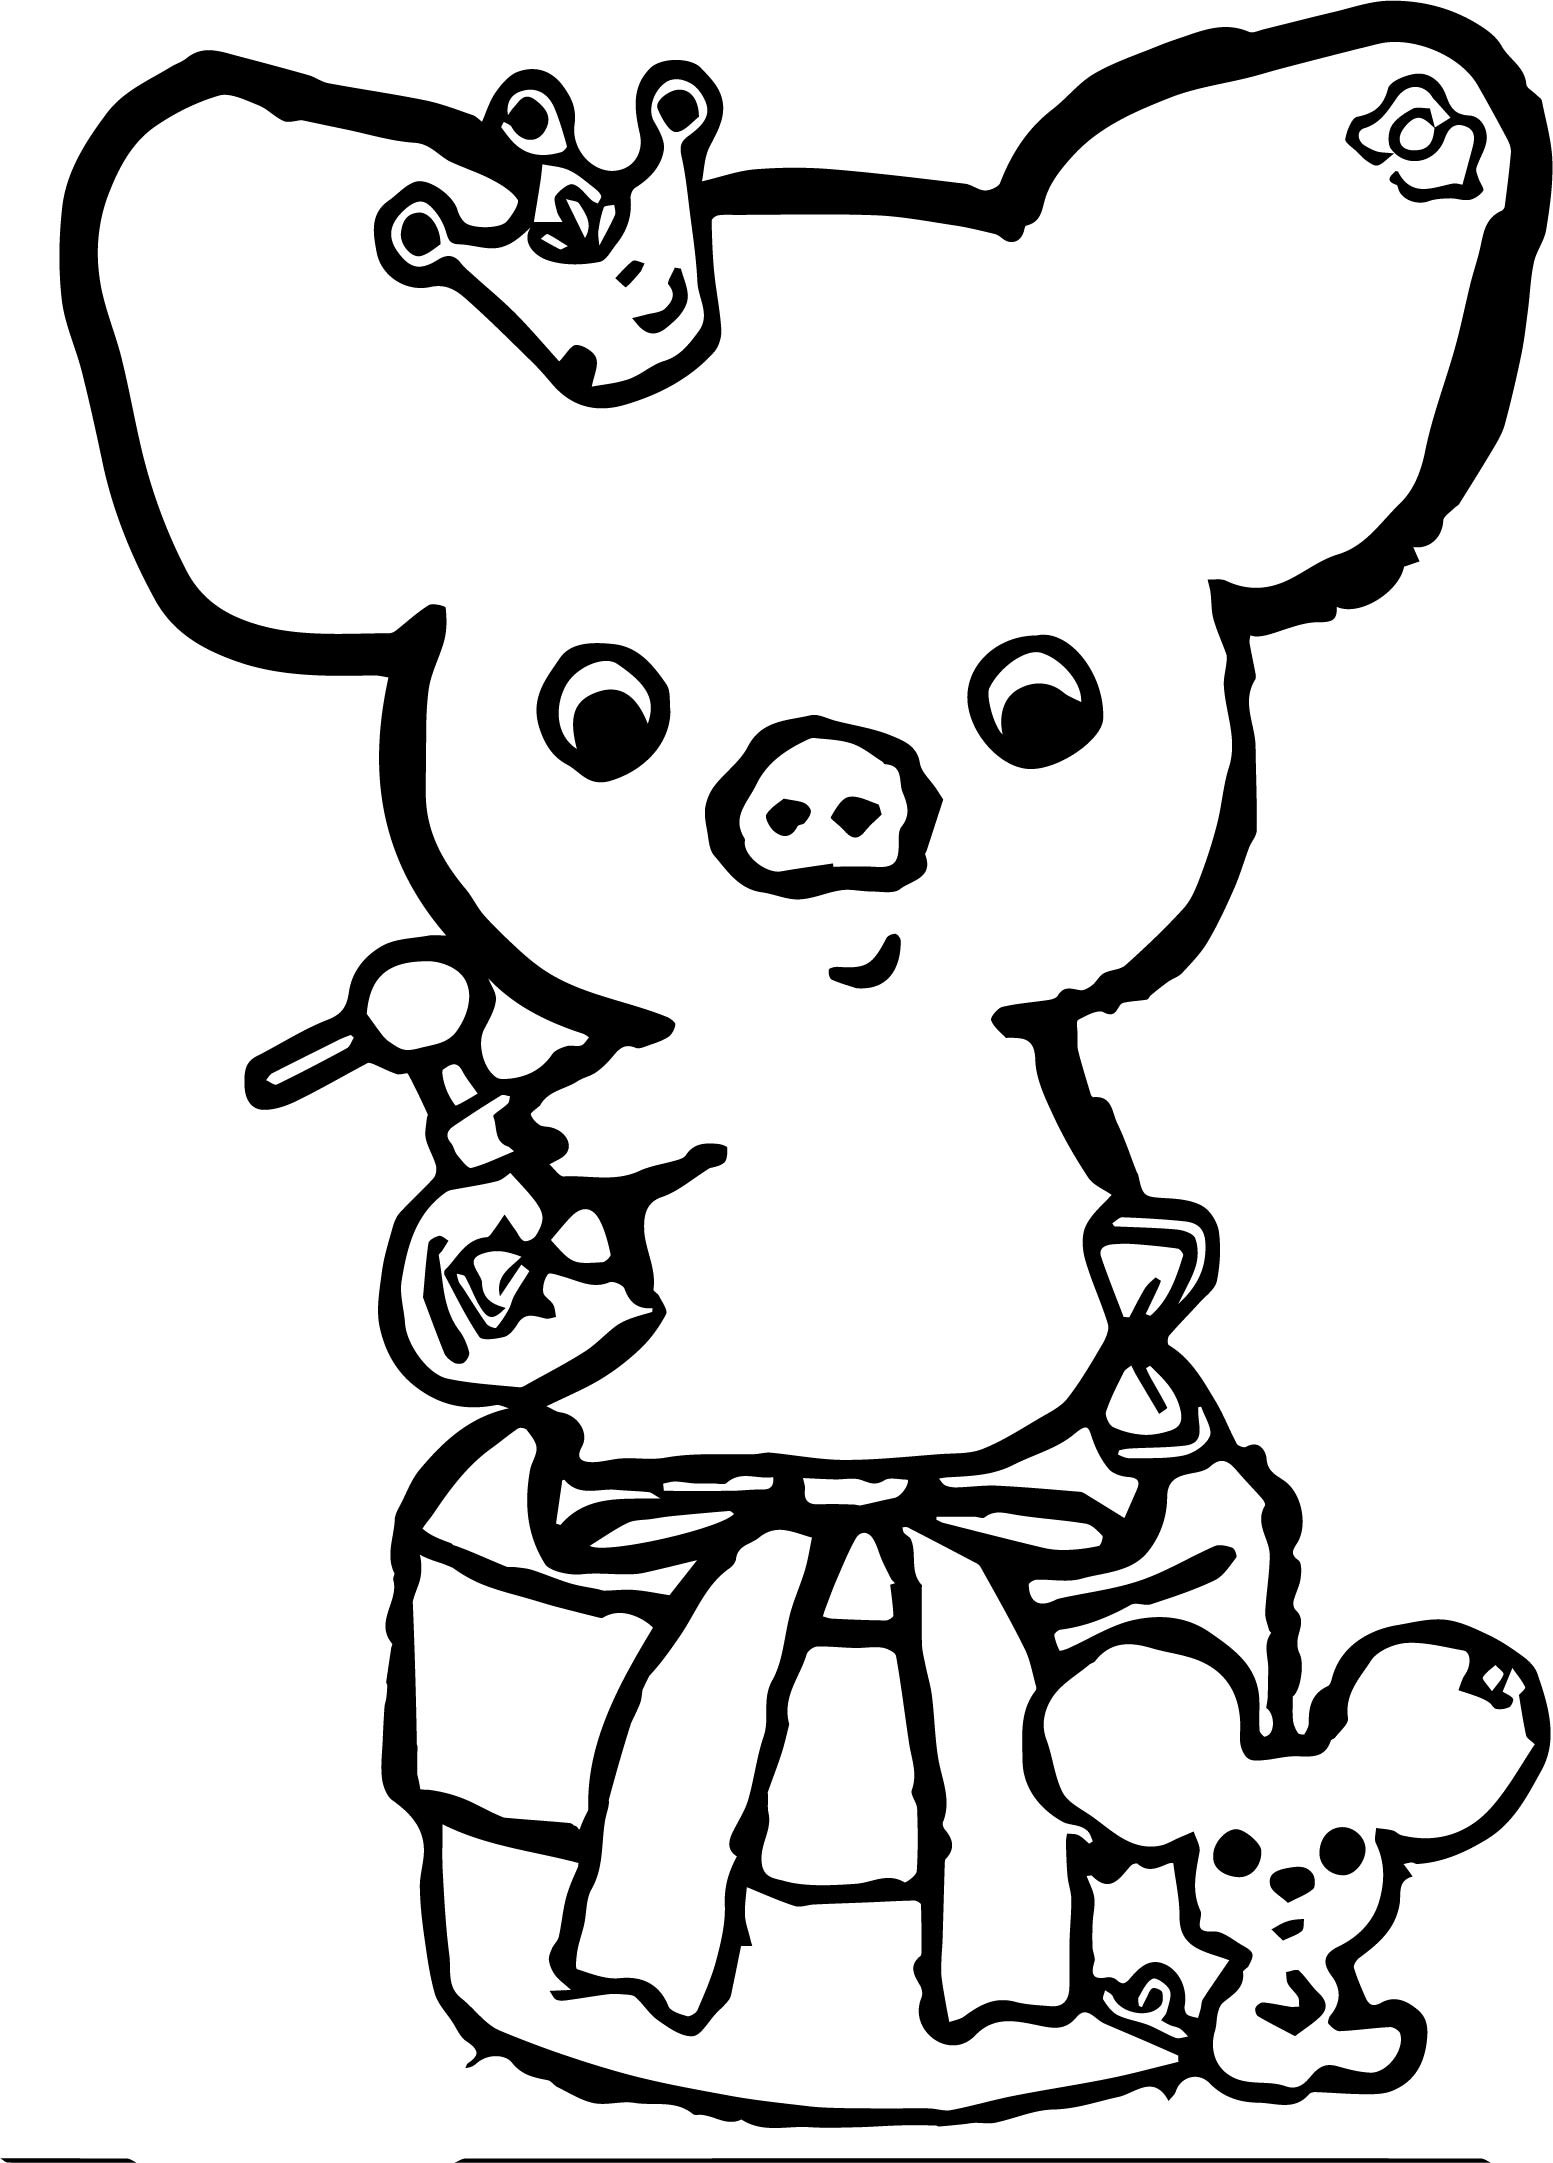 Res: 1553x2163, Piggy Back Ride Coloring Pages Clipart Library • Piggy Girl Coloring Page  Piggy Back Ride Coloring Pageshtml Miss Piggy Coloring Pages The